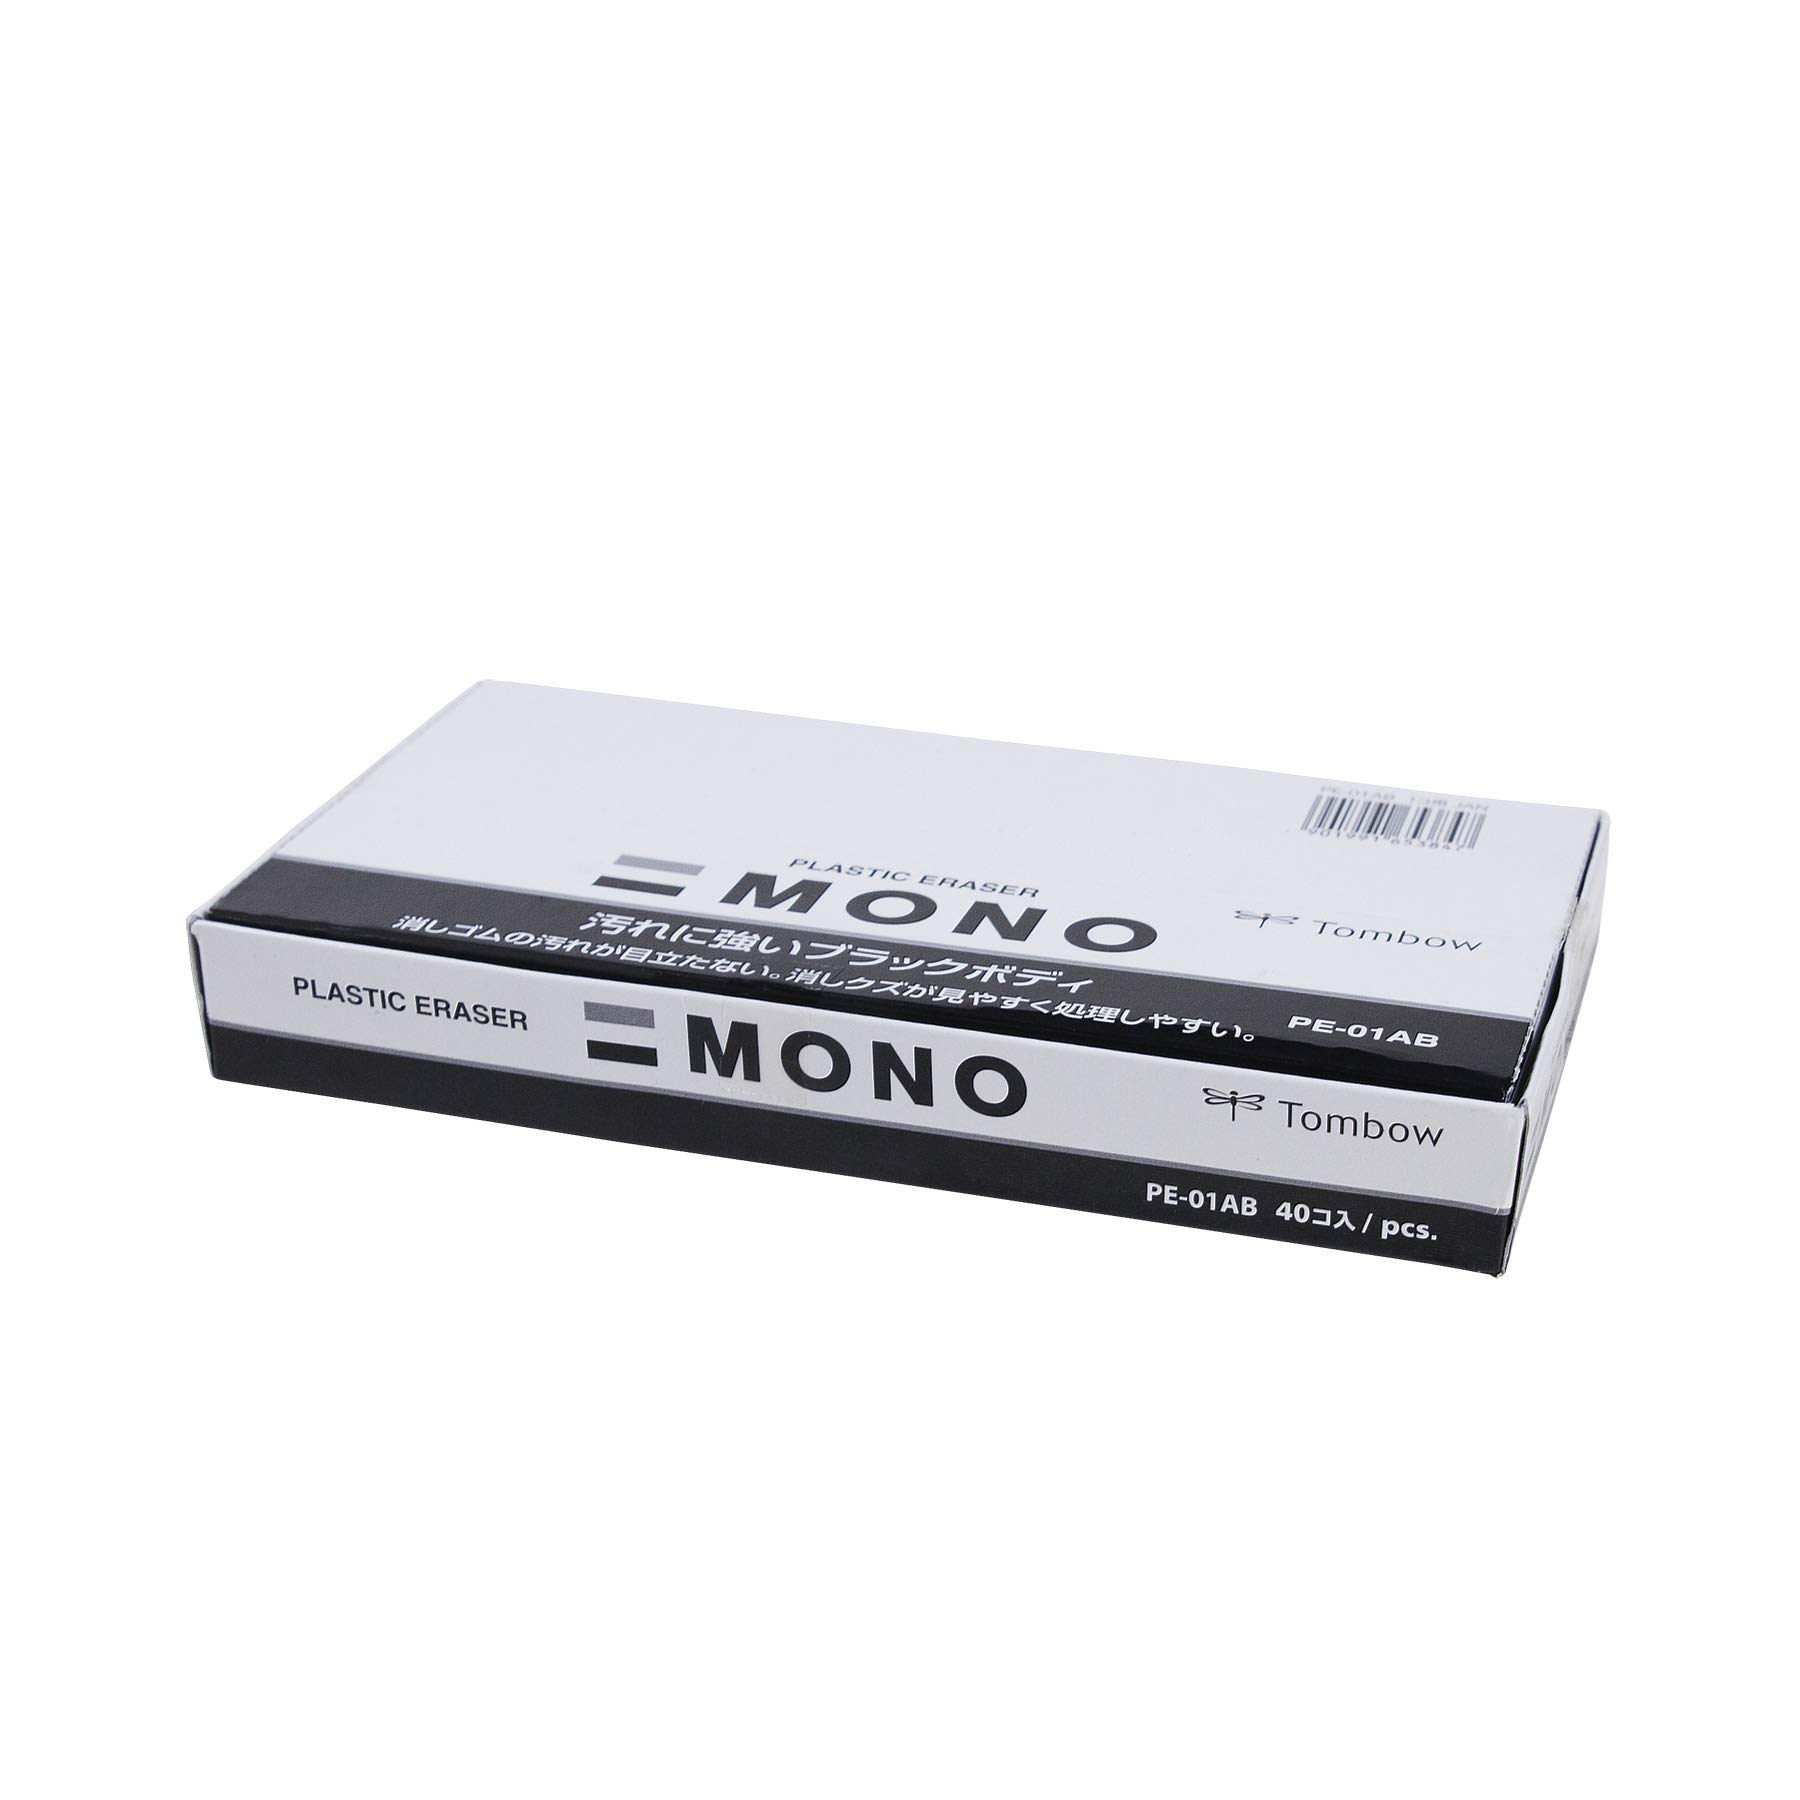 TOMBOW Mono Eraser, Black, Small, 40 PC Box, Pack, Piece by Tombow (Image #4)